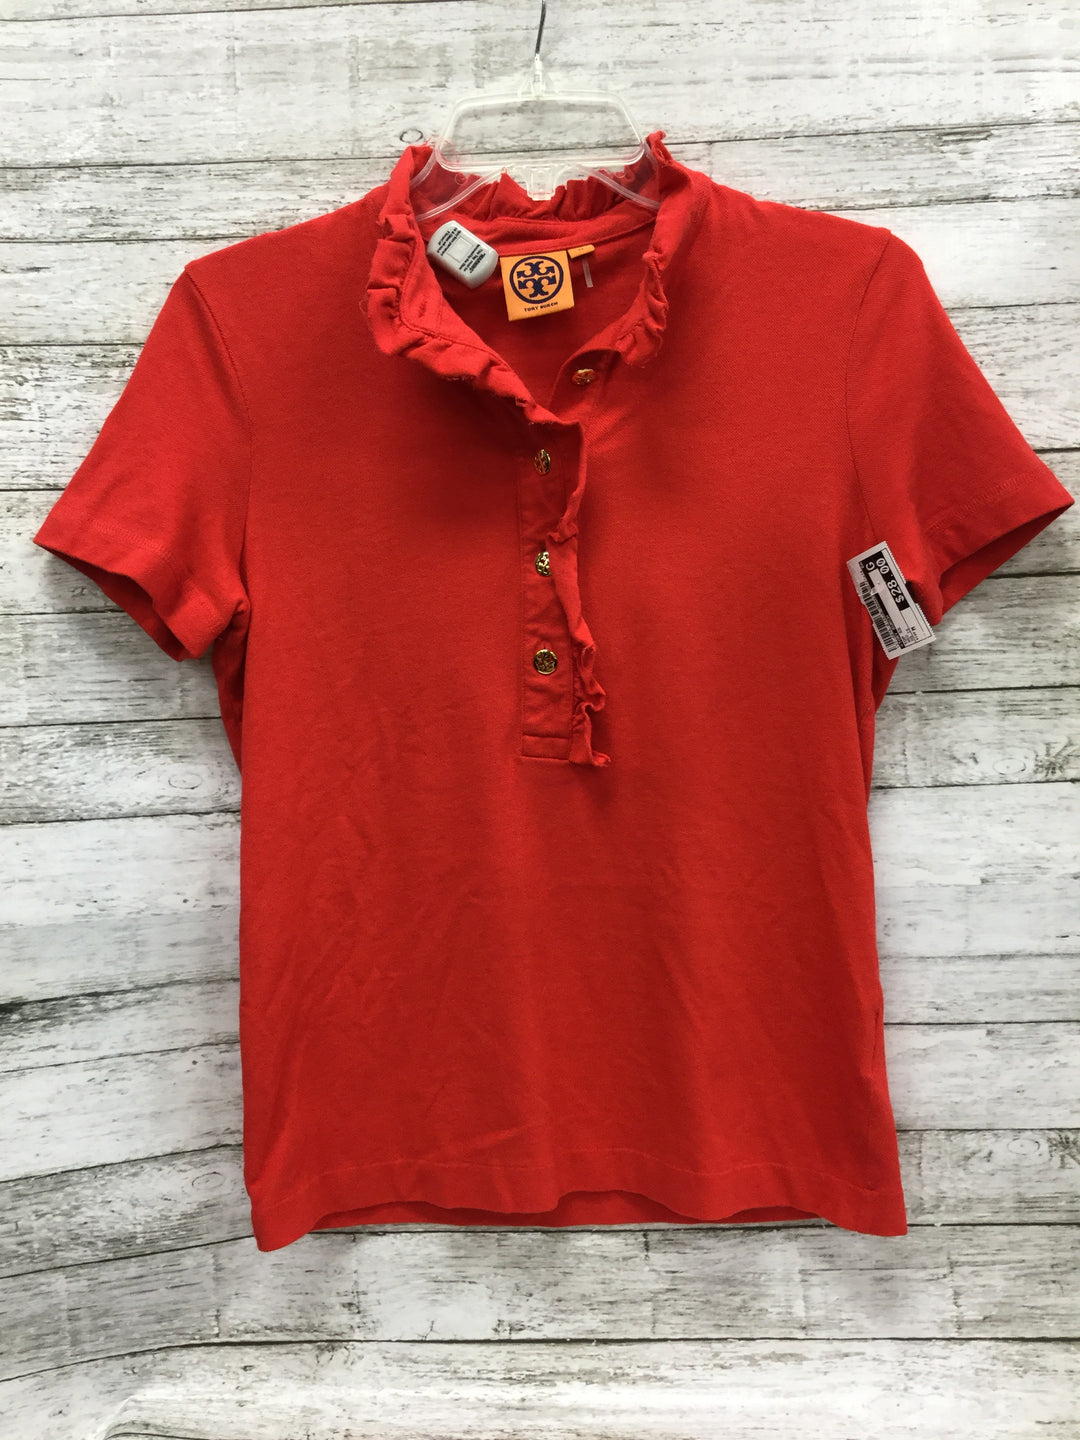 Primary Photo - BRAND: TORY BURCH , STYLE: TOP SHORT SLEEVE , COLOR: RED , SIZE: M , OTHER INFO: AS IS , SKU: 127-4876-8145, , THE COLLAR OF THIS TOP IN GENTLY USED. OTHERWISE THIS TOP IS IN GREAT CONDITION.